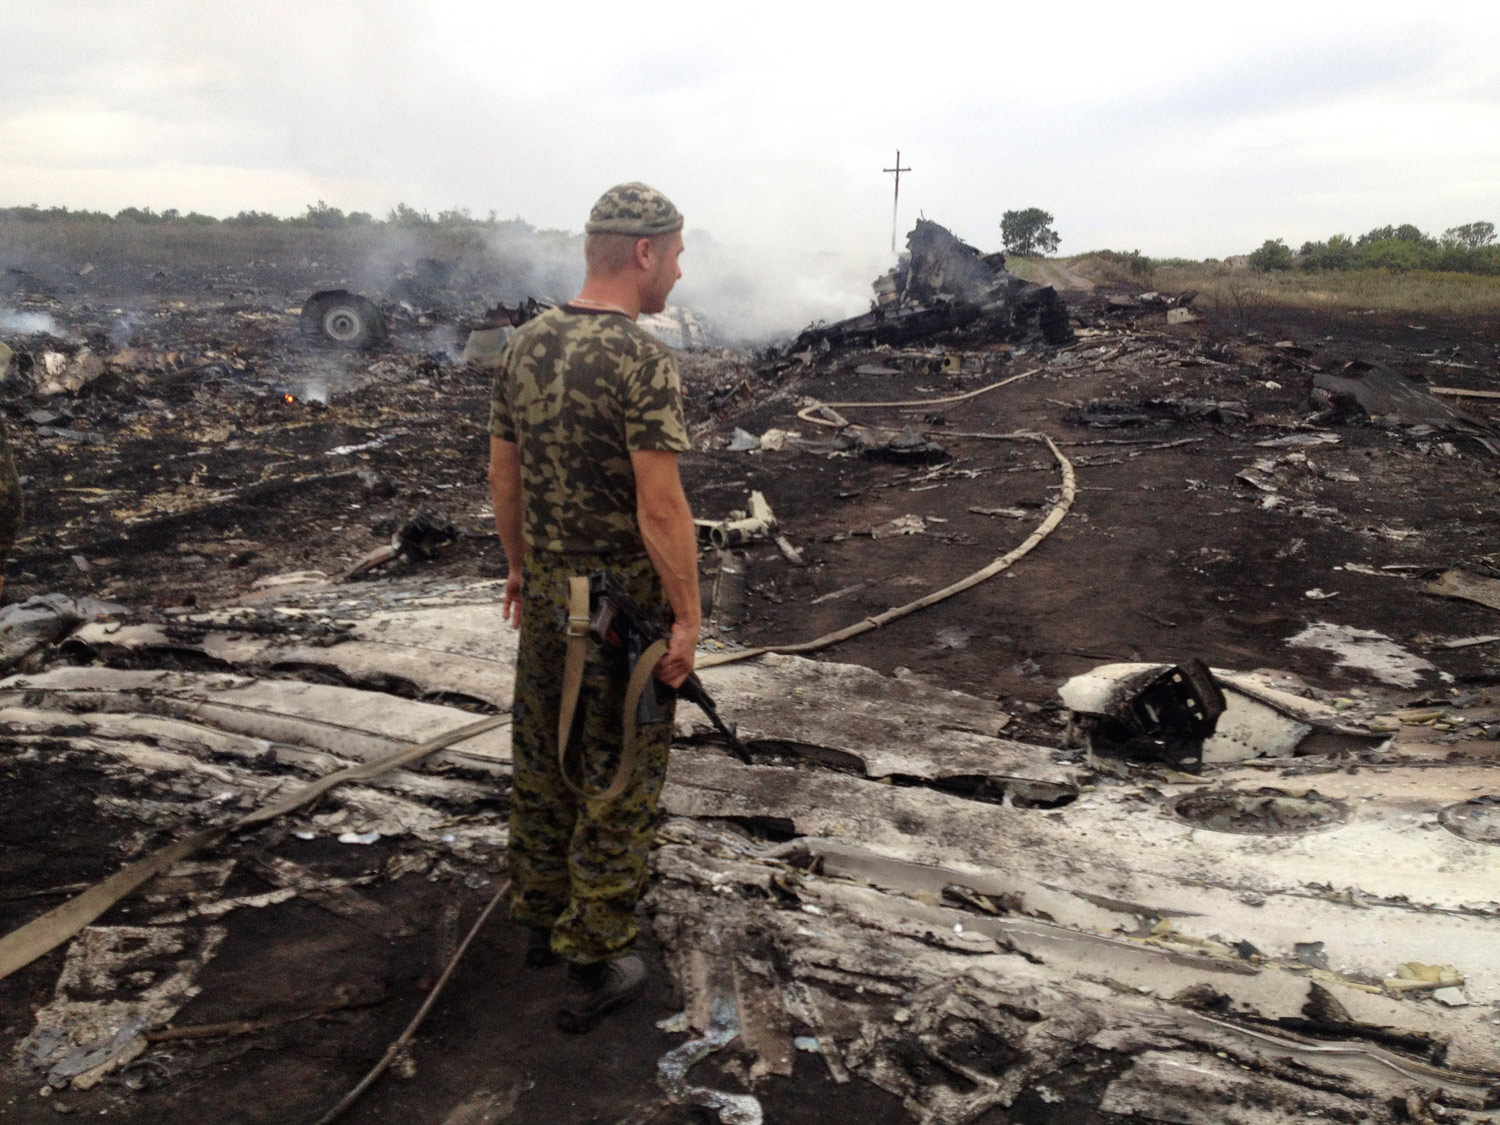 Malaysia-Airlines-Flight-MH17-Shot-Down-Near-Ukraine-Russia-Border